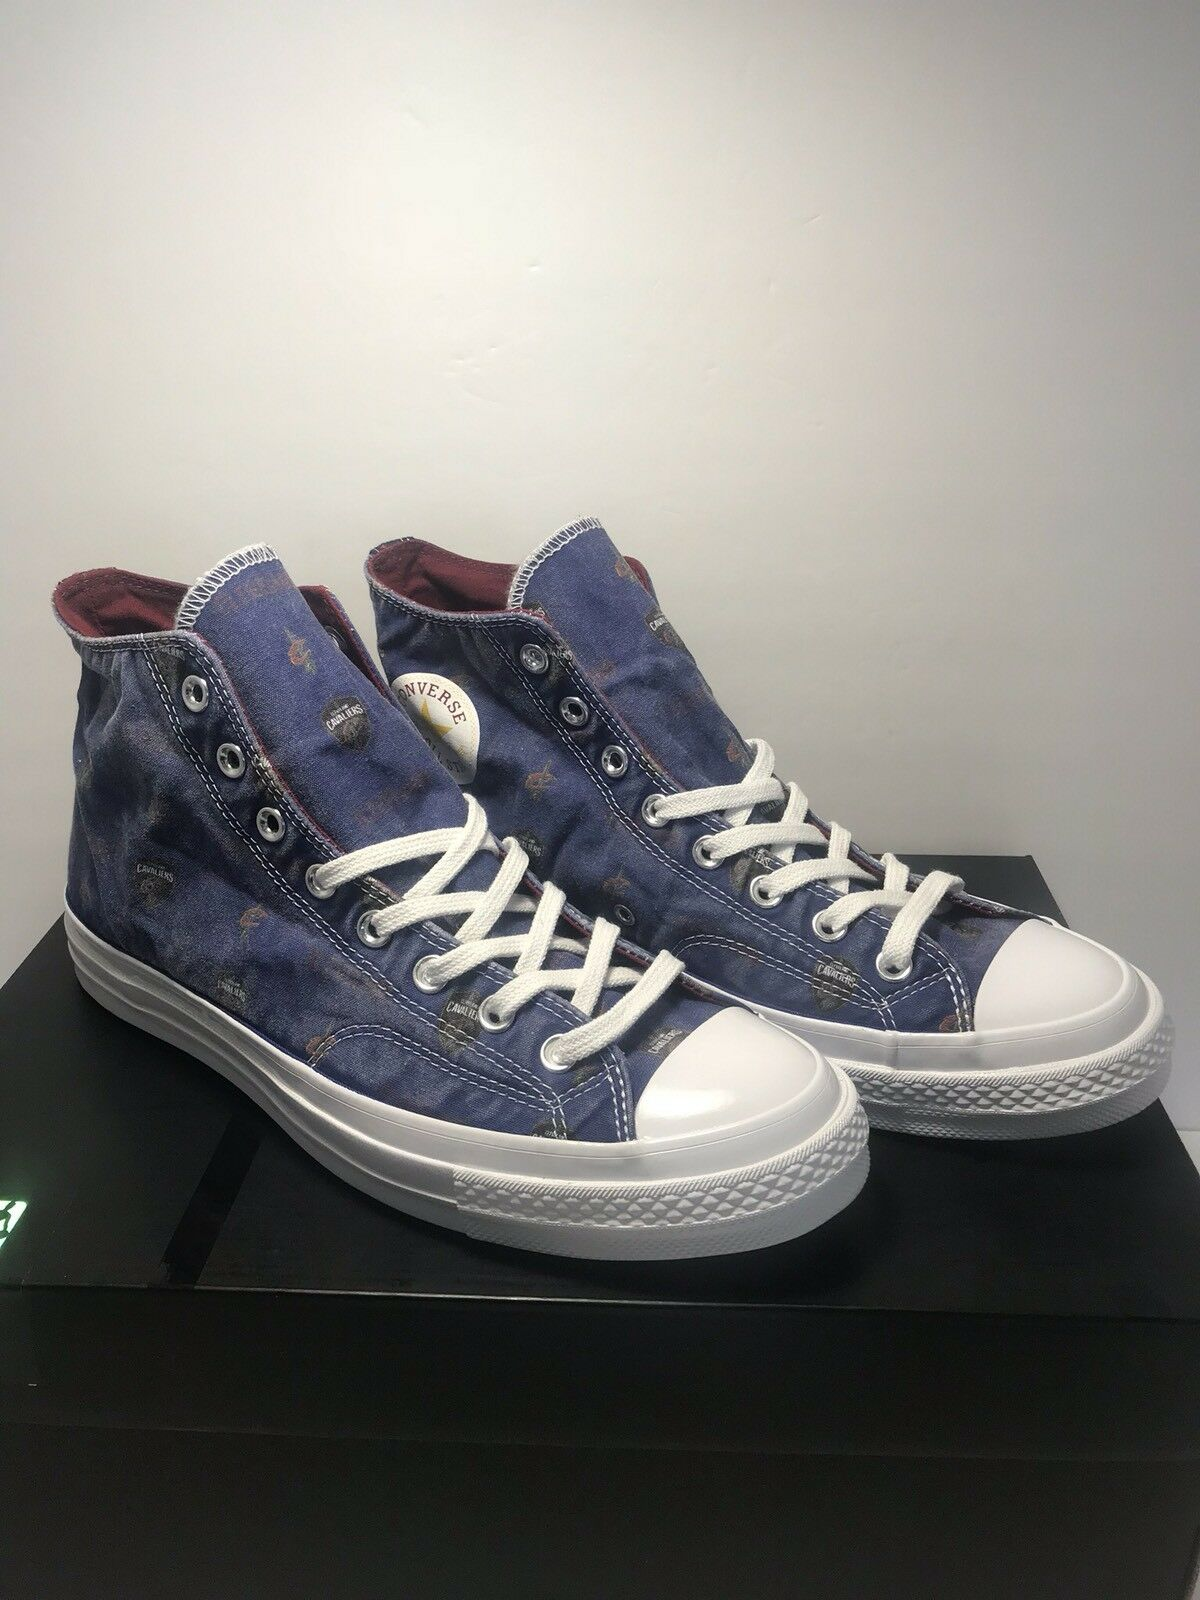 Converse Mens Size 10 CTAS Rare Cleveland Cavaliers Chambray High Top Shoes